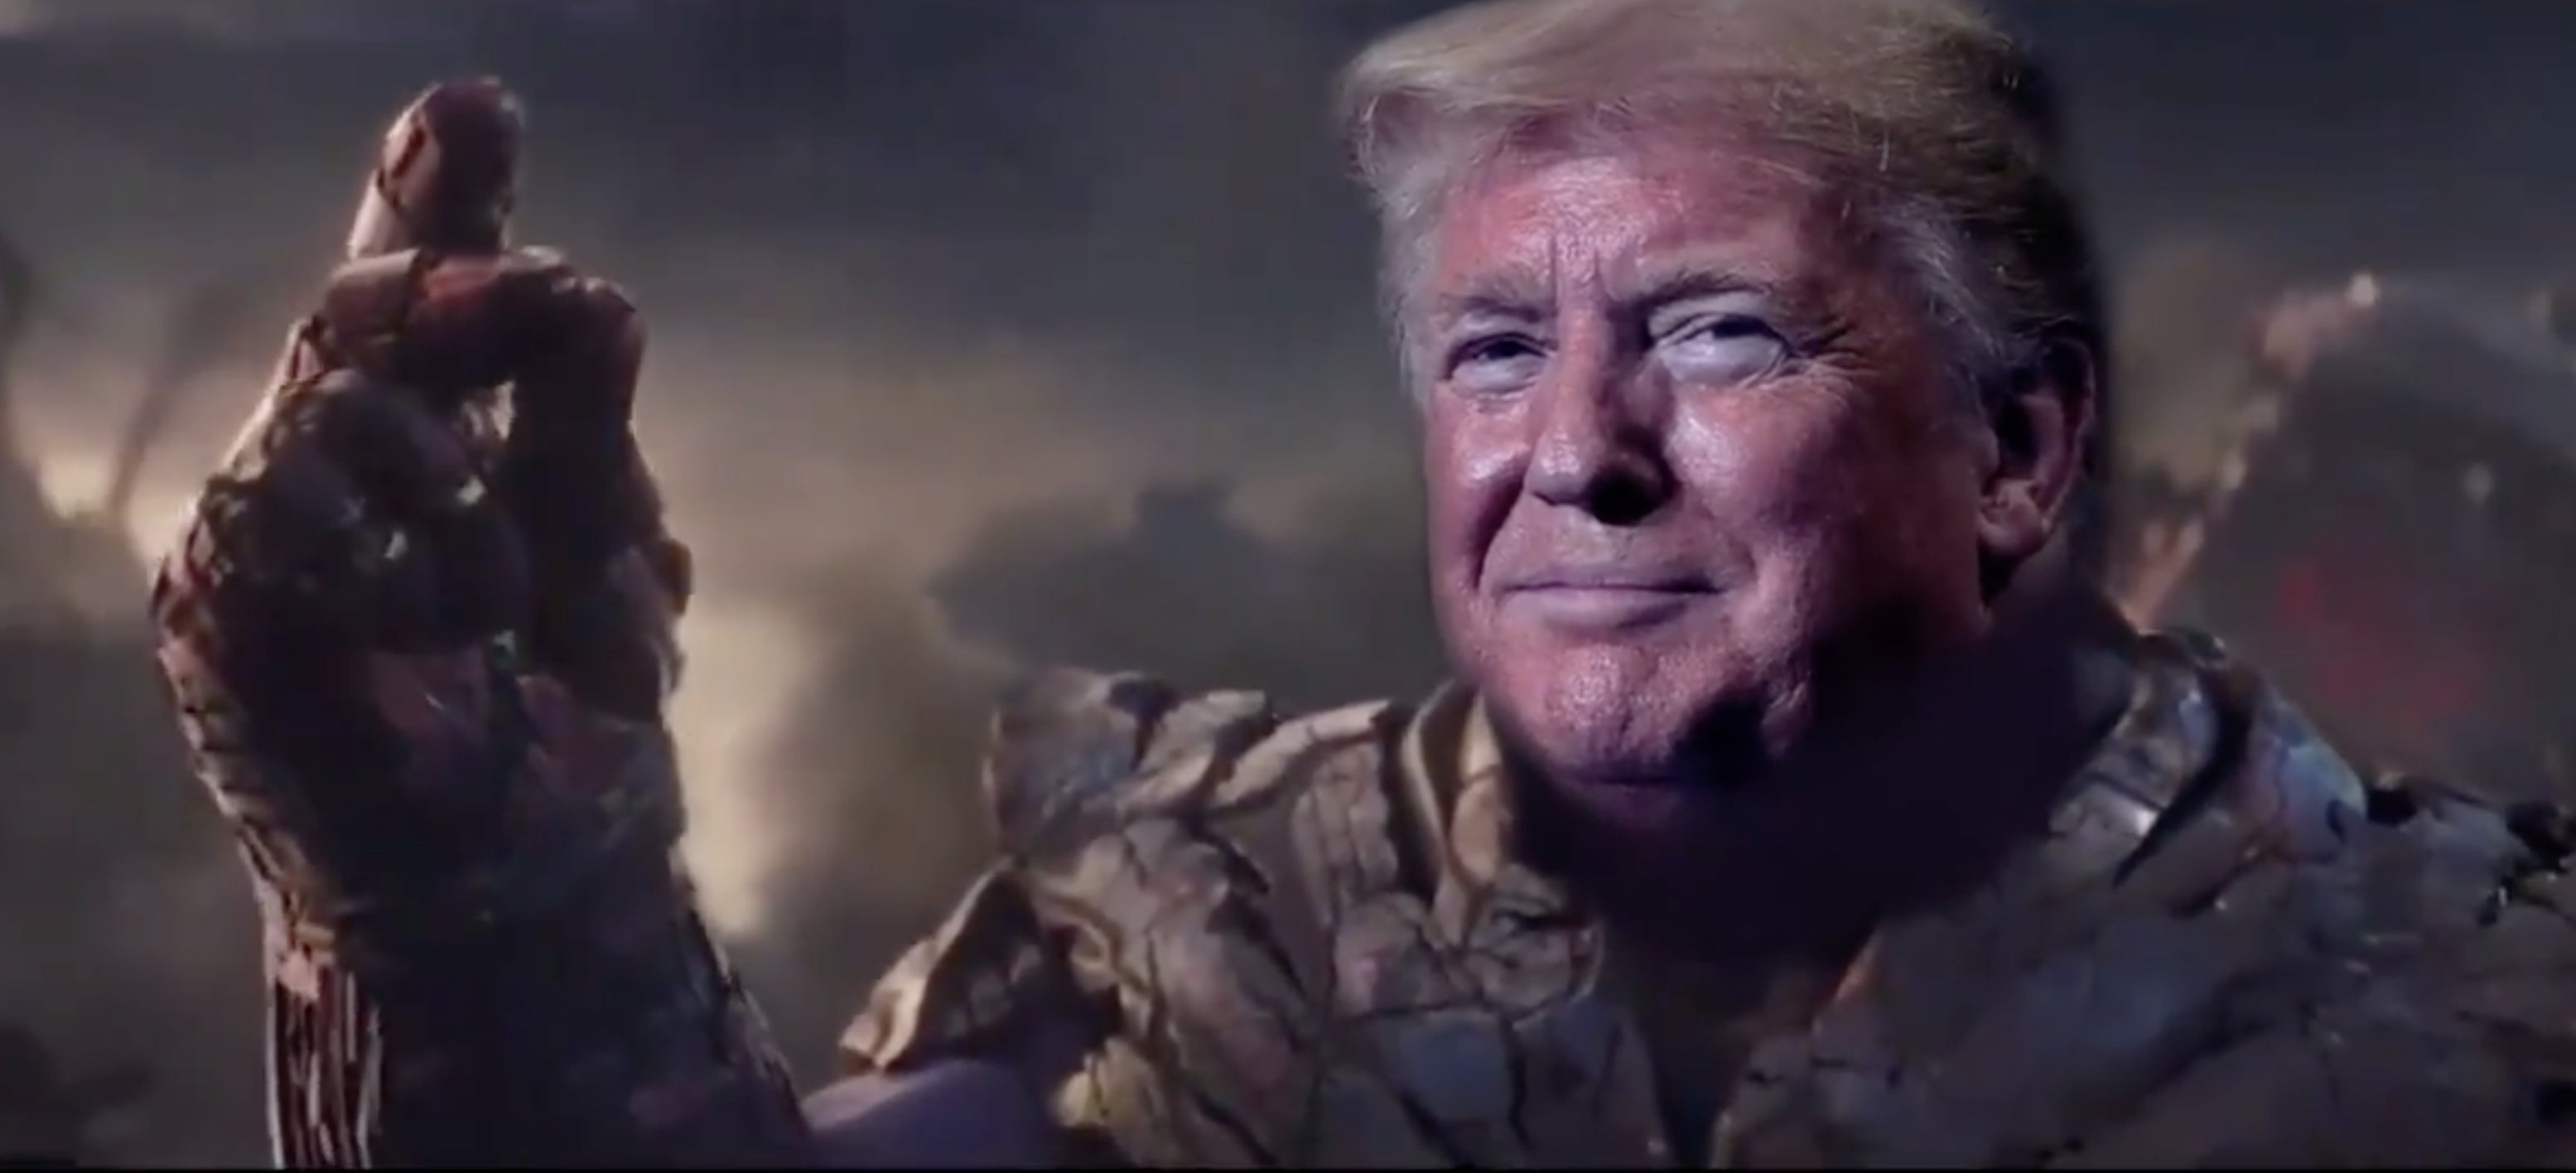 The video — tweeted out by a Trump supporter account — shows Trump's head on Thanos' body.